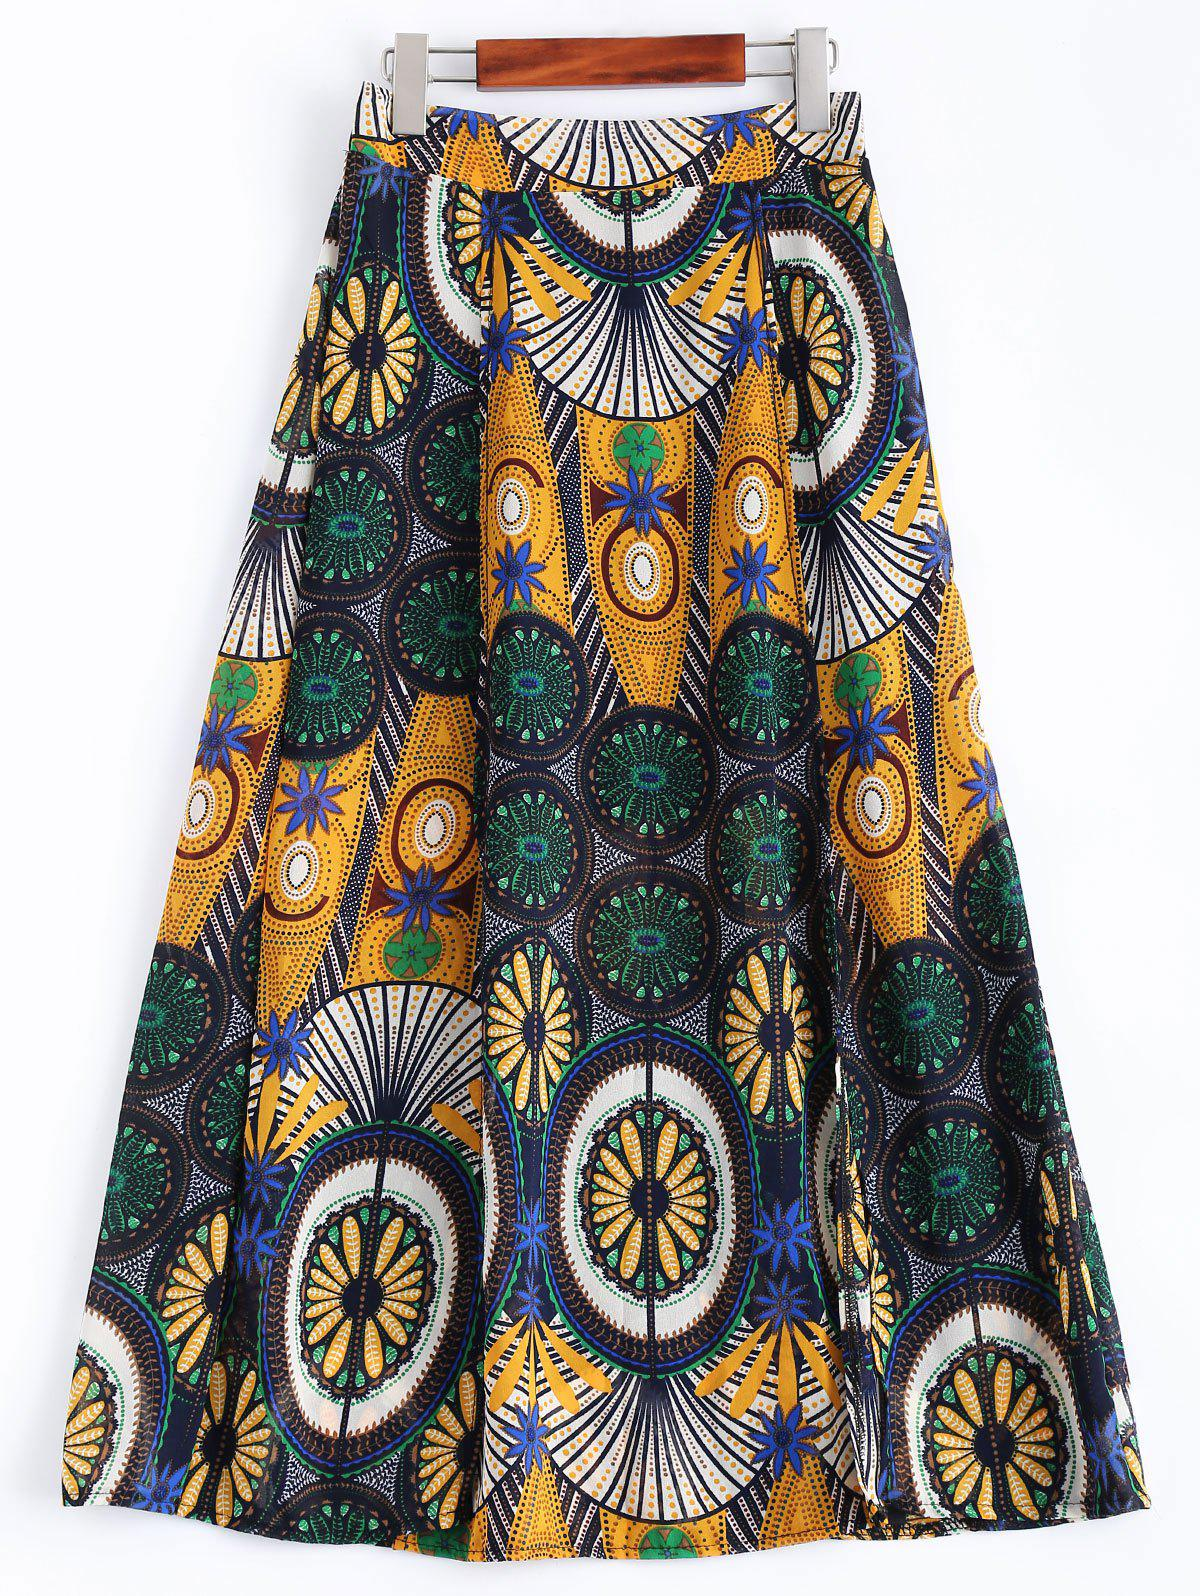 High-Waisted Ornate Printed Skirt - COLORMIX ONE SIZE